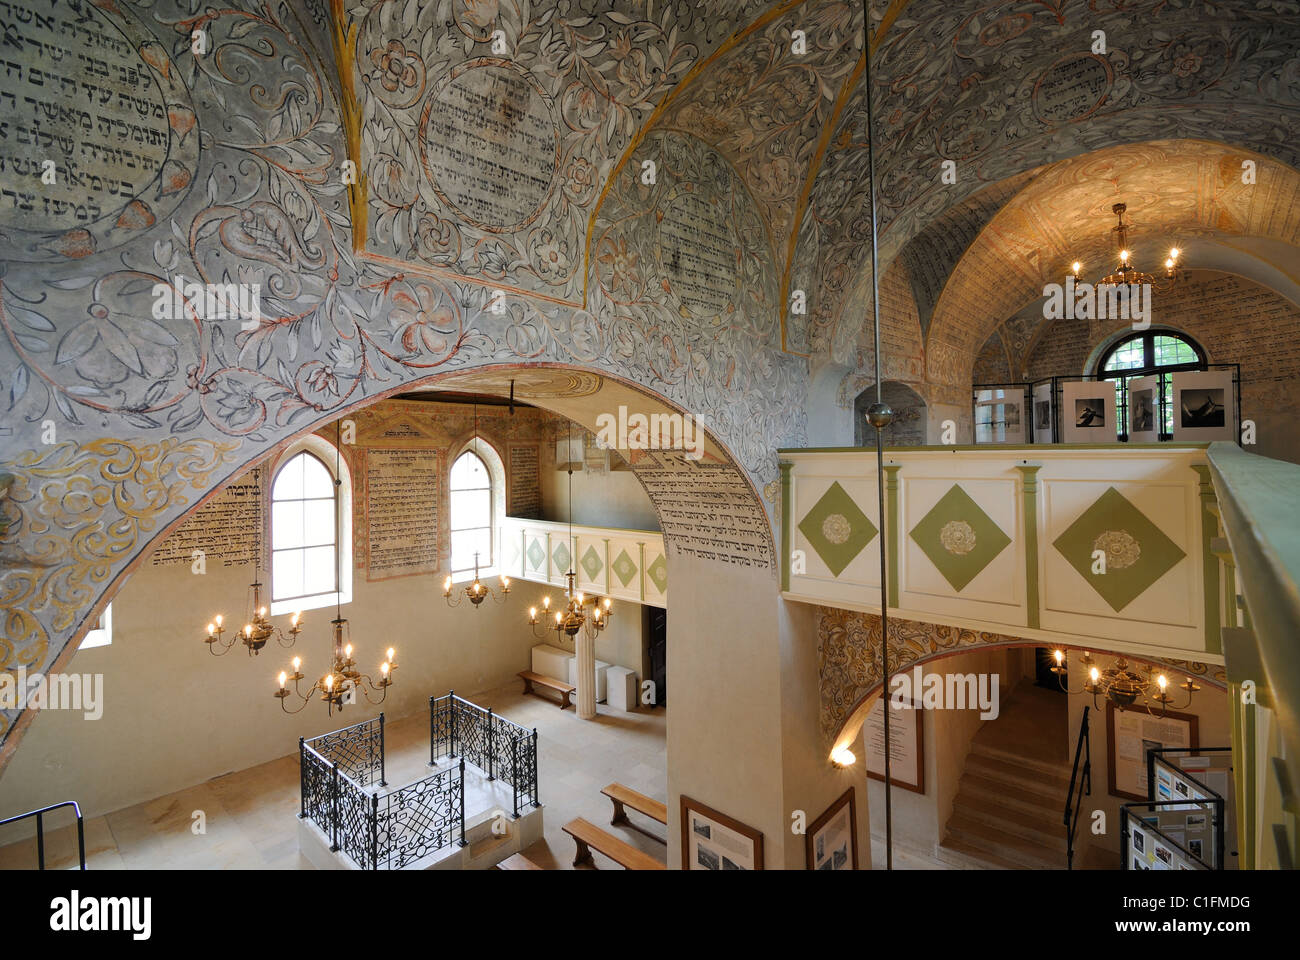 The interior of the Boskovice Synagogue displays a rare kind of painted masonry, some of which has been beautifully - Stock Image